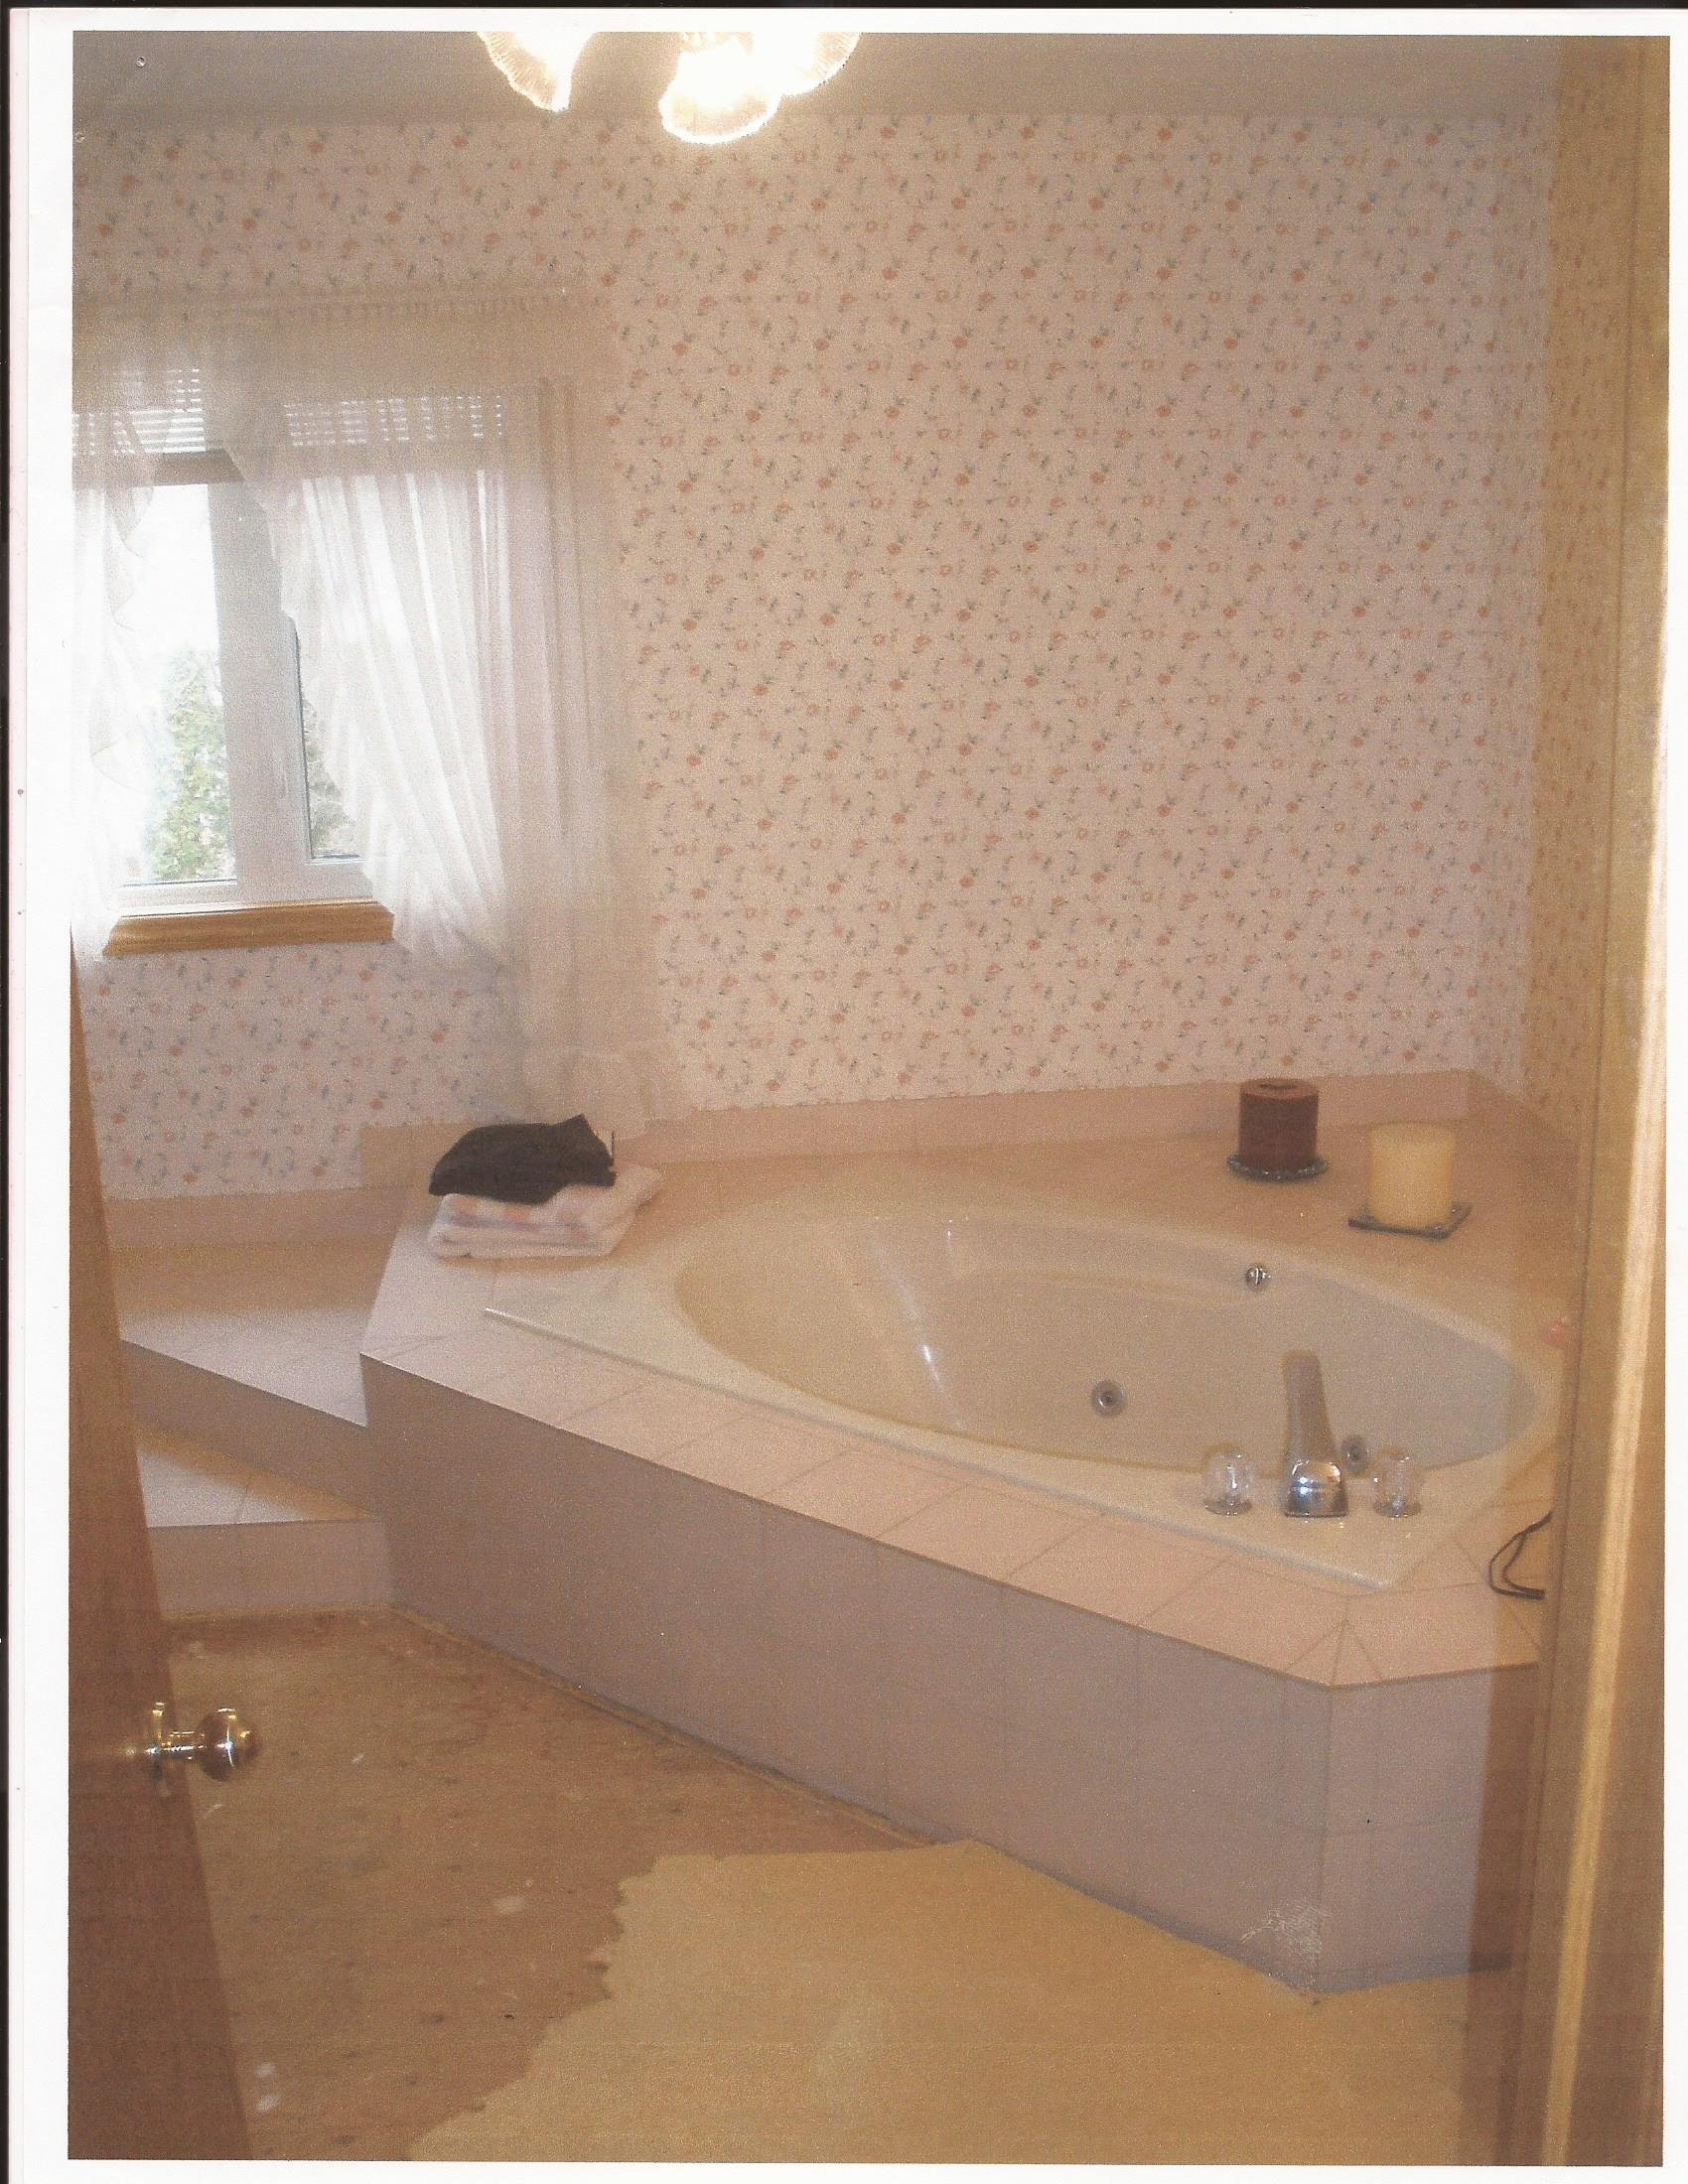 Bathroom Renovation Guide: En-suite Bathroom Renovation Guide